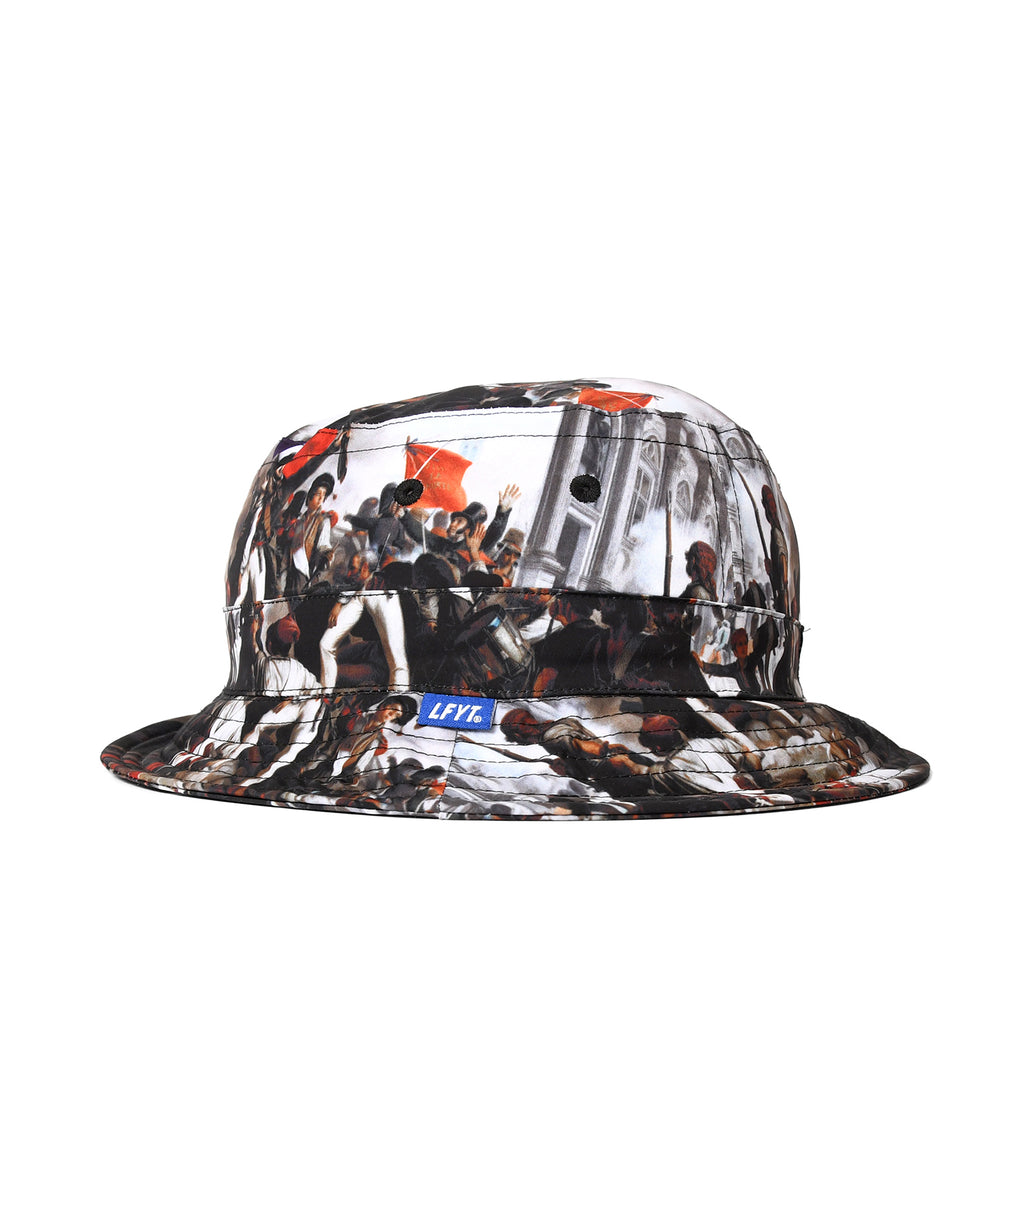 FRENCH REVOLUTION POLYESTER BUCKET HAT LS211401 BLACK